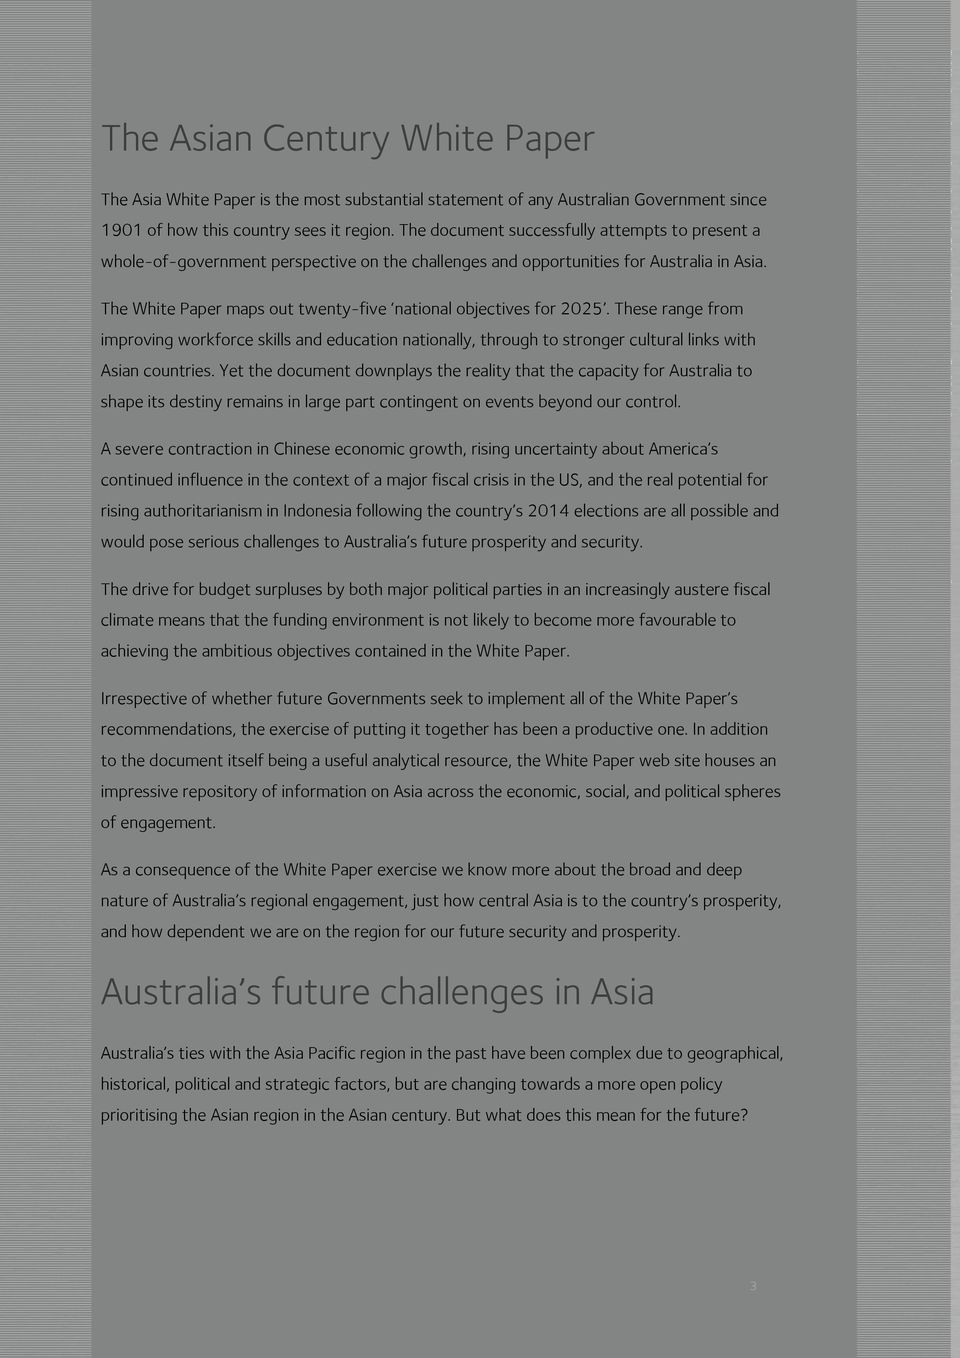 The White Paper maps out twenty-five national objectives for 2025. These range from improving workforce skills and education nationally, through to stronger cultural links with Asian countries.